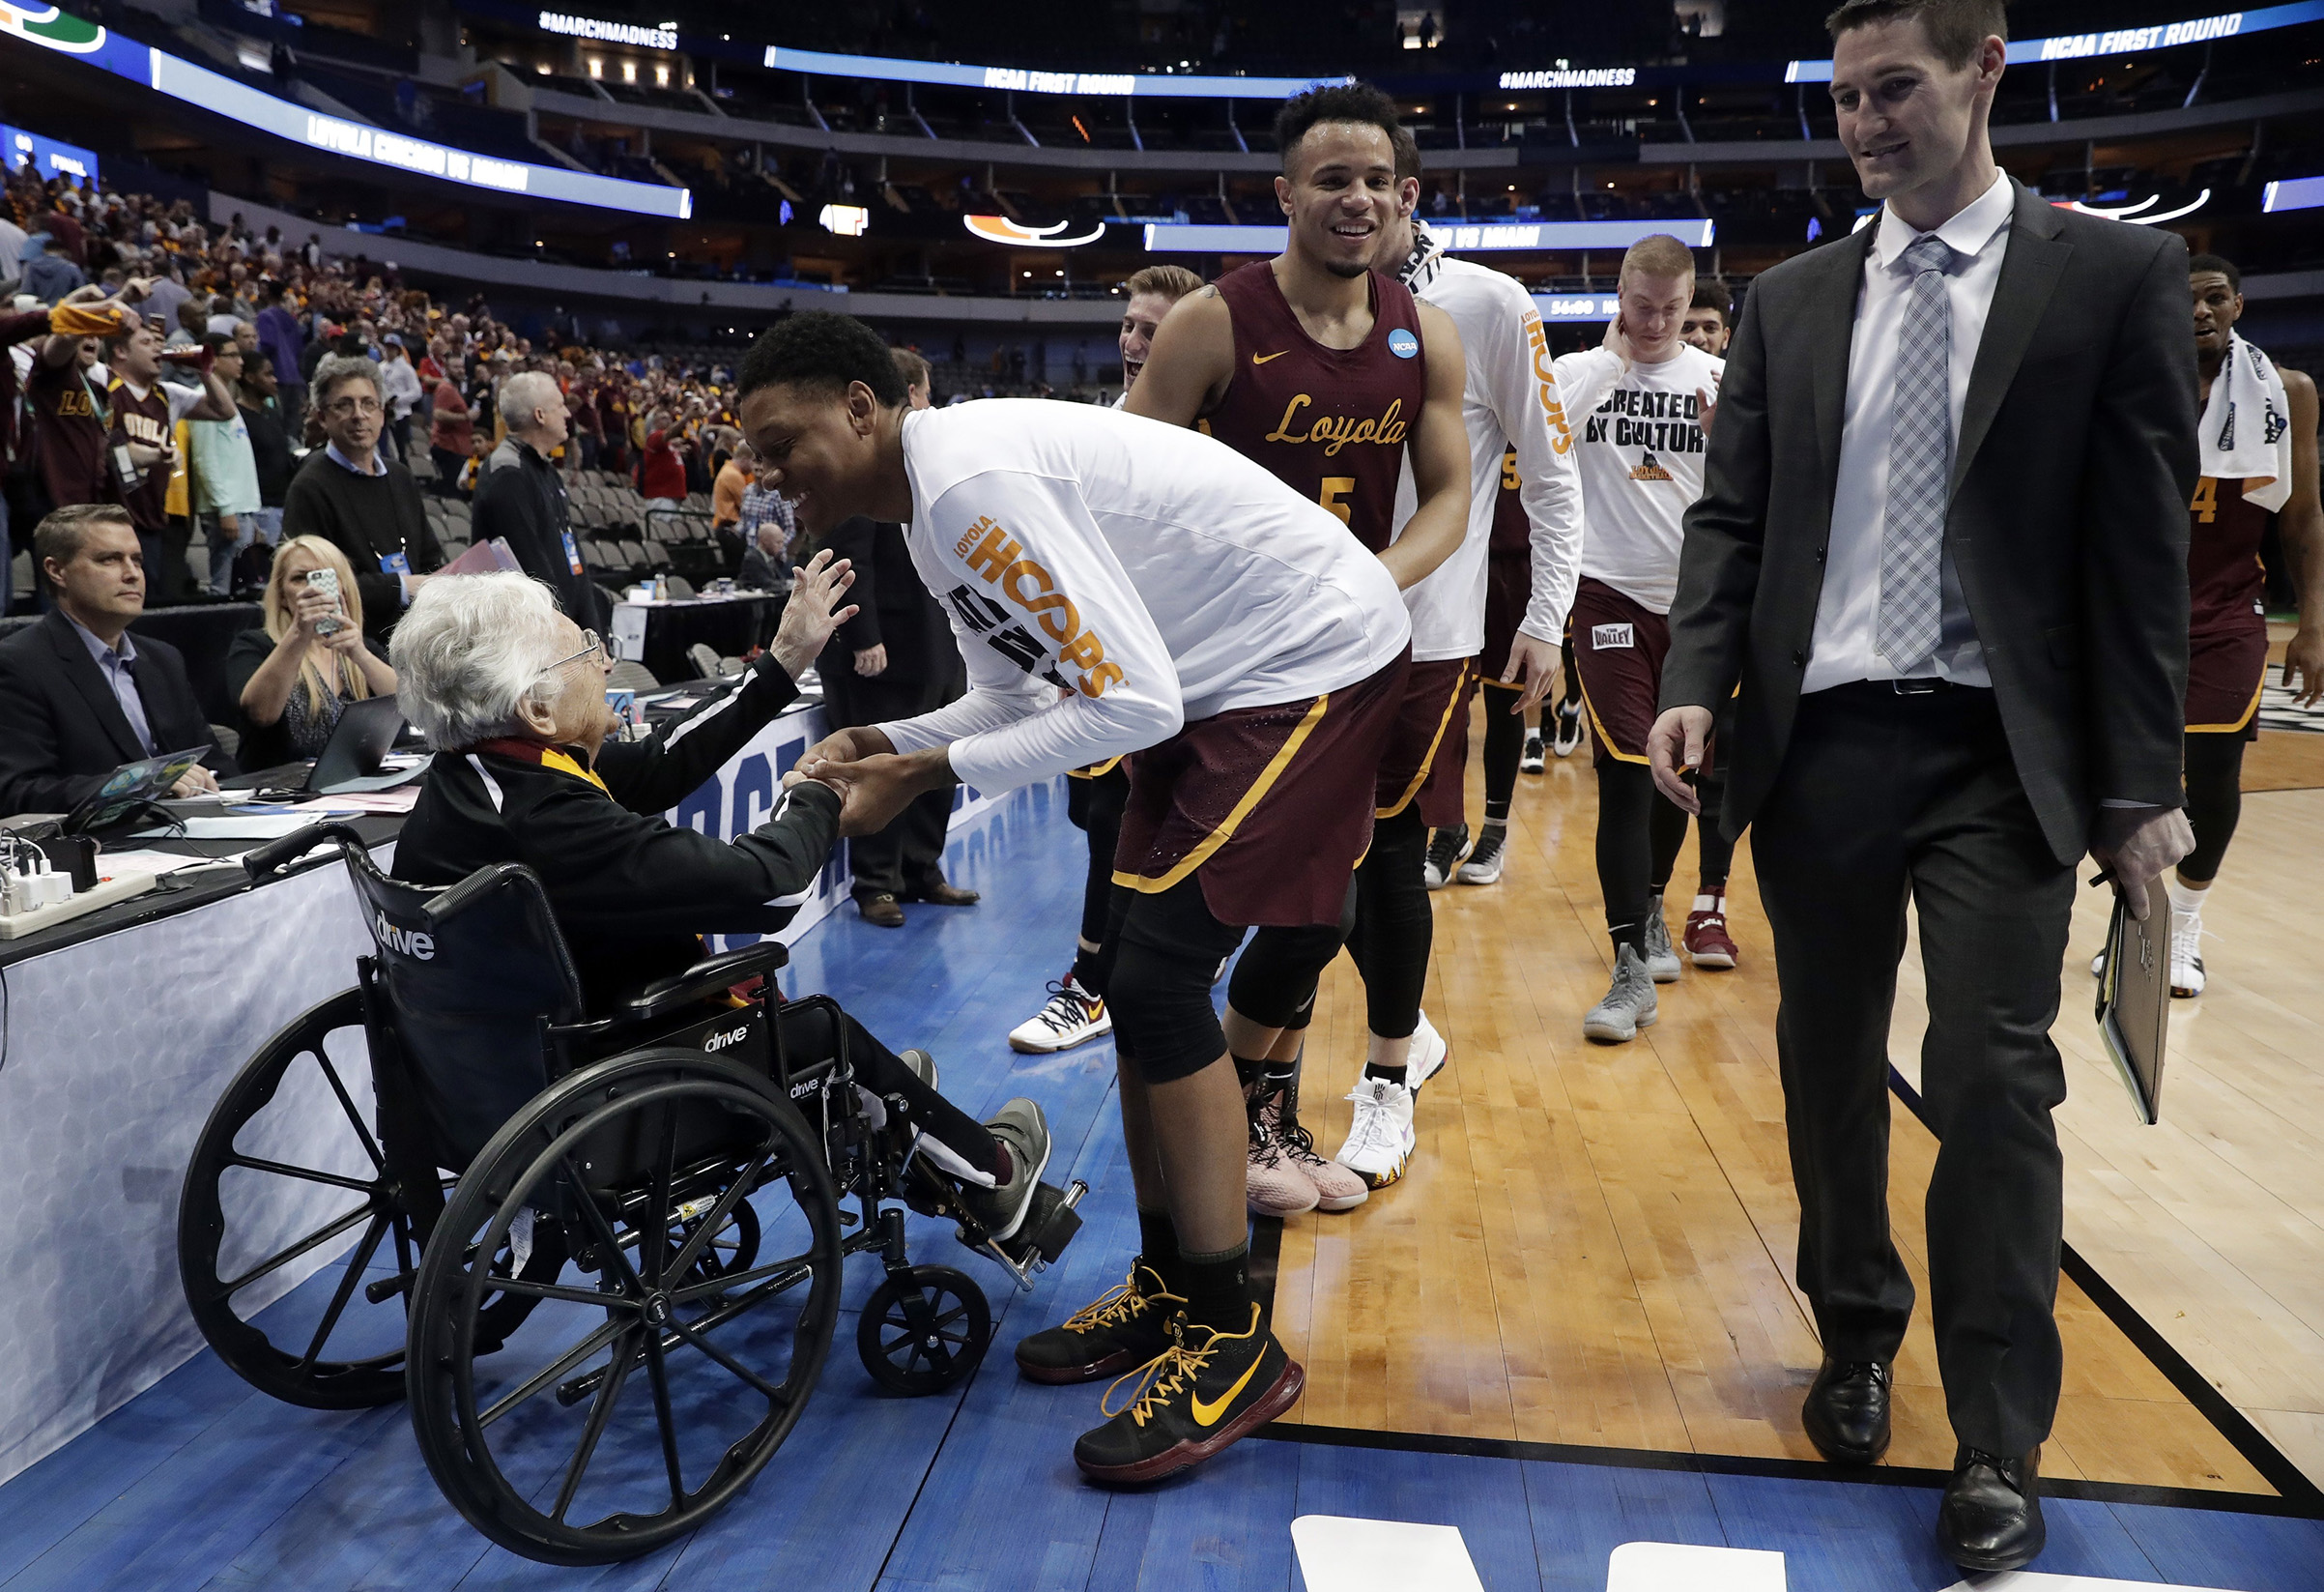 Sister Jean, the 98-year-old team chaplain for Loyola-Chicago, greets players after a win